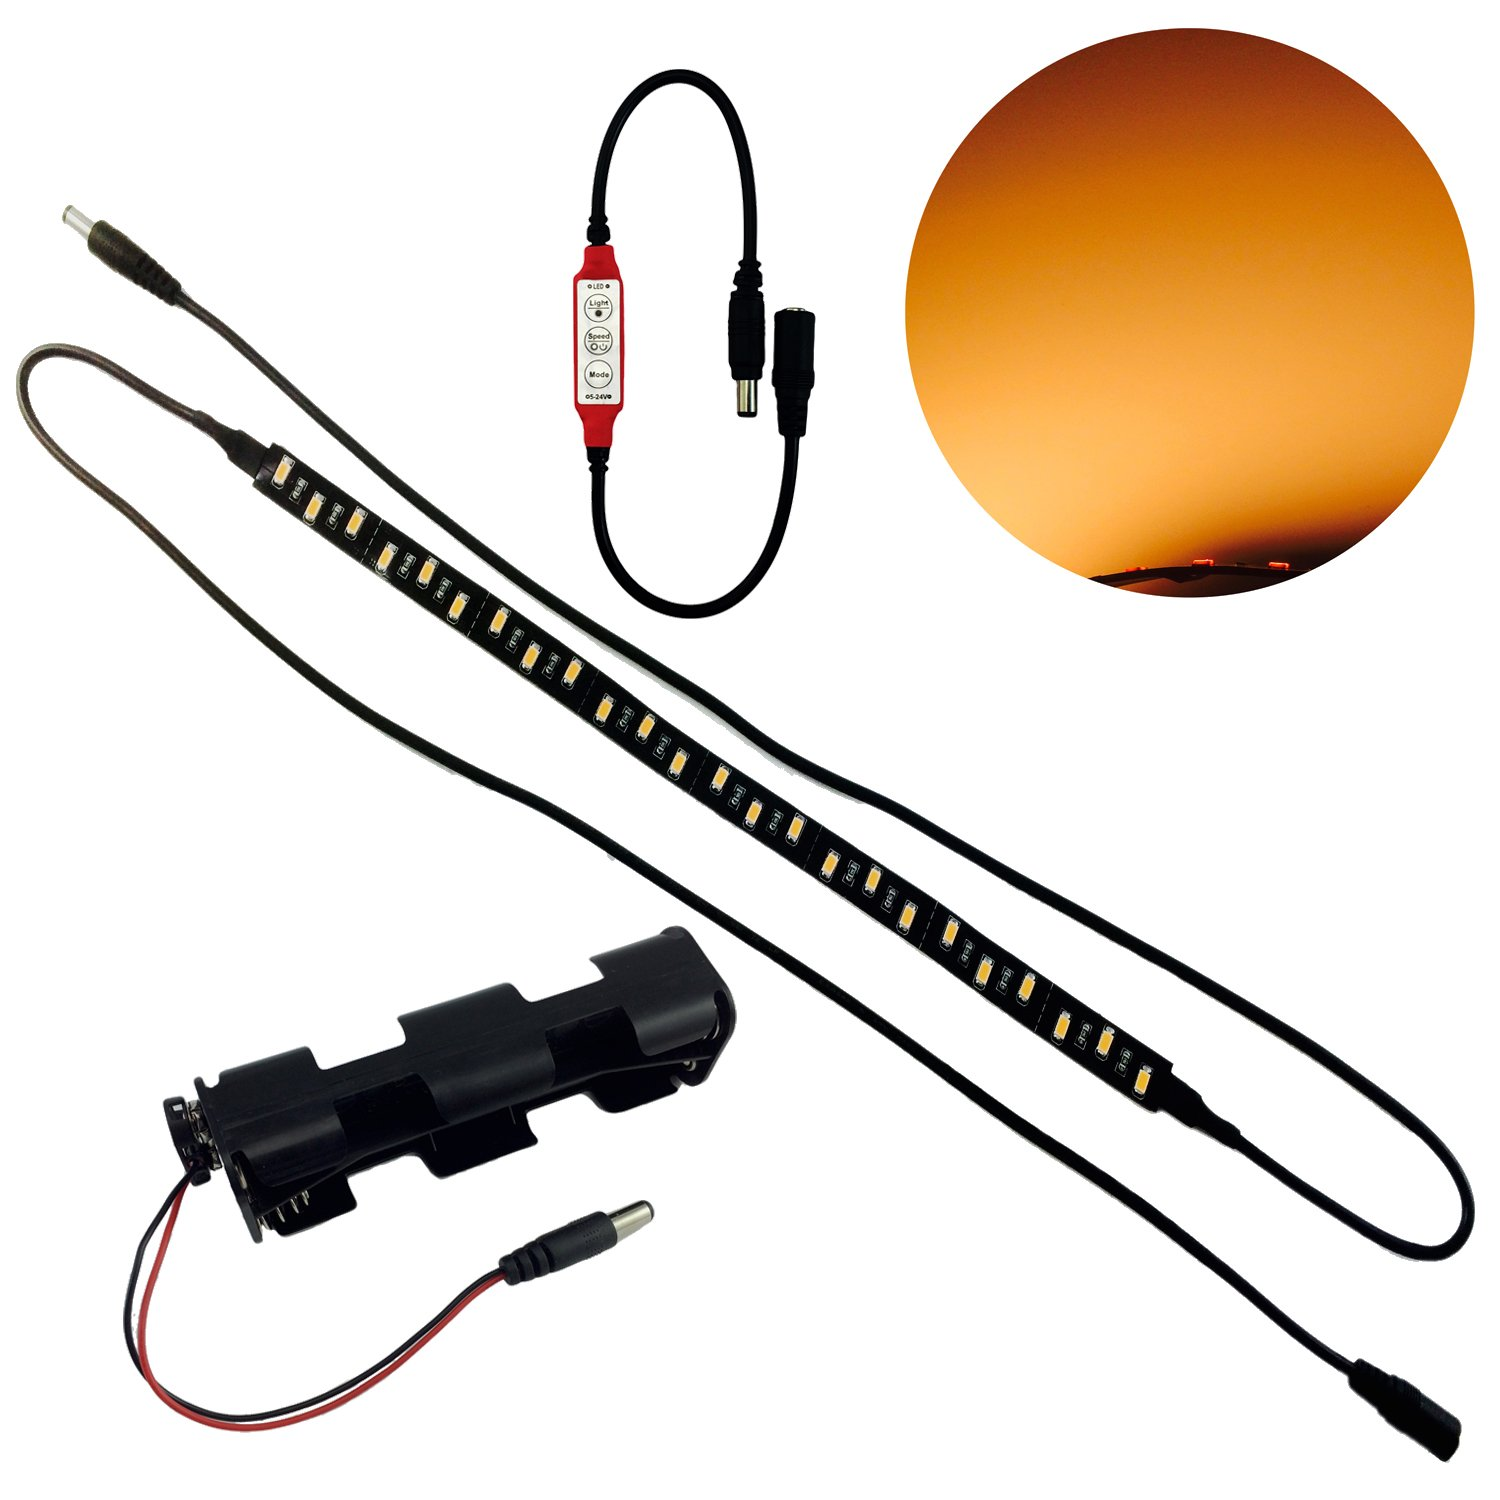 Candlelight LED flex 1775 Kelvin high CRI 93 candle light spectrum 12 volts DC 4 watts with flame flicker effects control strip for props scenery theatrical filmmaking and video by LED Lighting